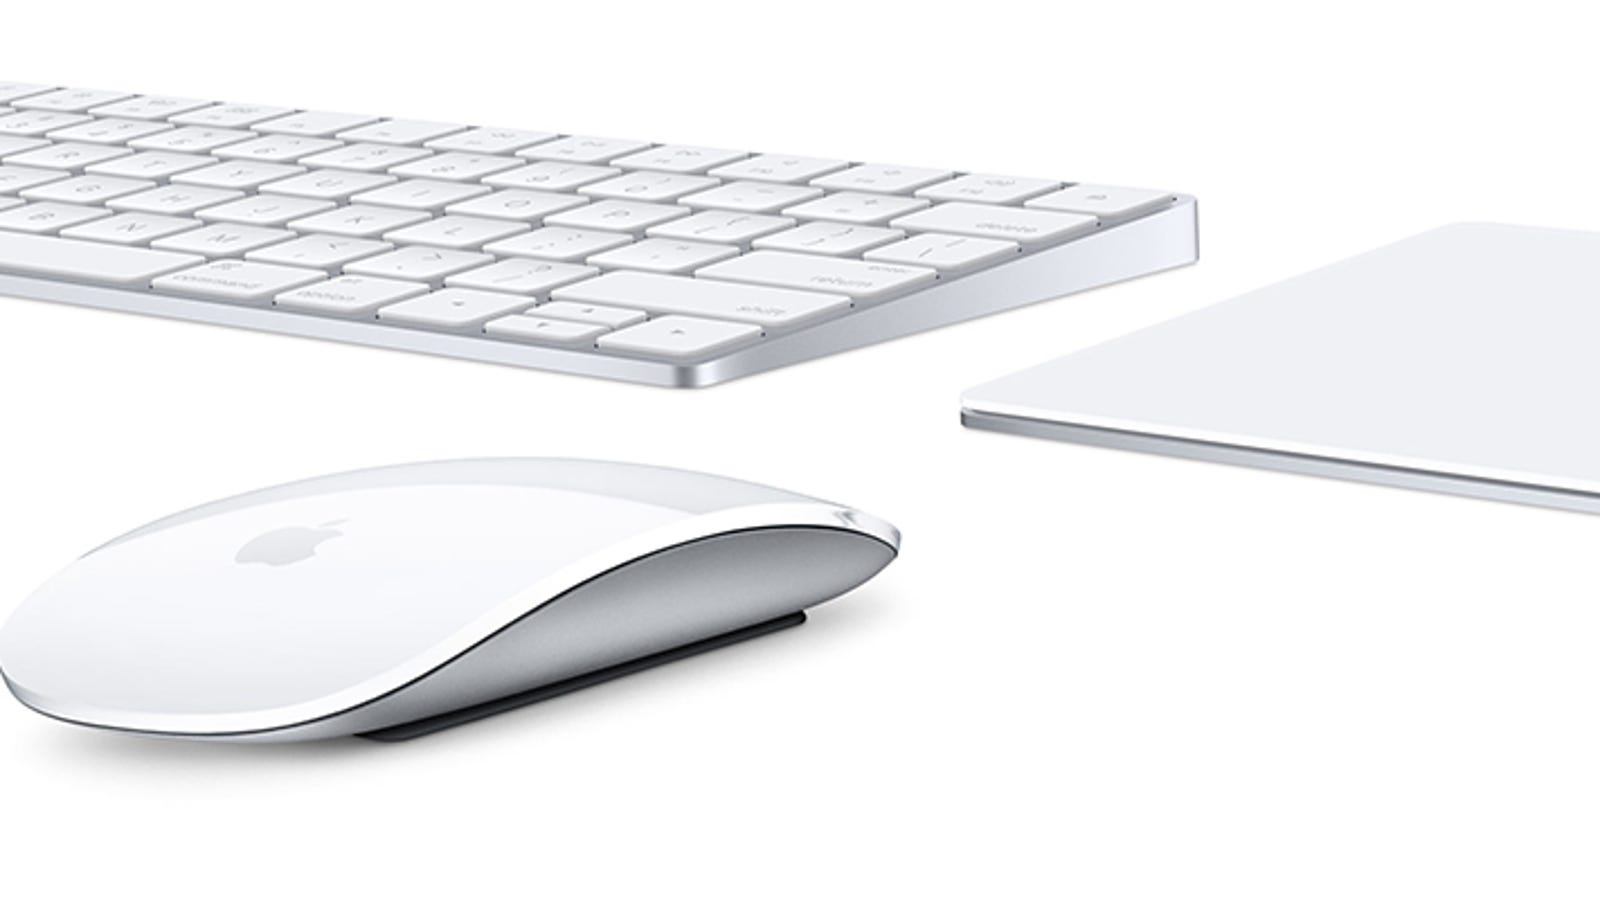 449d818260a Apple's New Magic Keyboard, Mouse, and Force Touch Trackpad Are All  Rechargeable